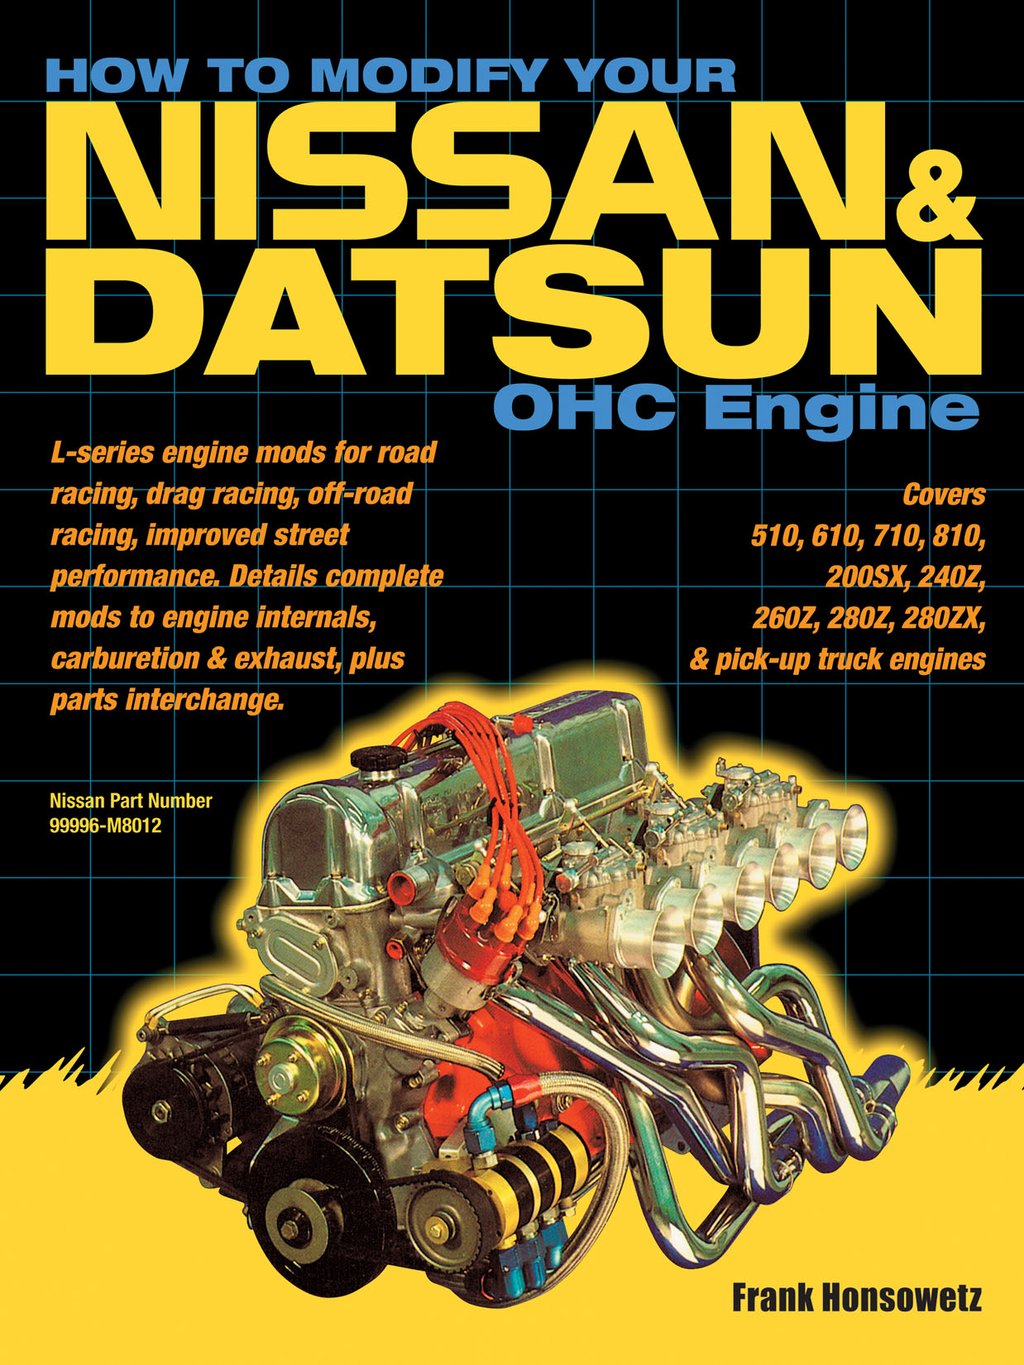 How to Modify Your Nissan & Datsun OHC Engine By: Frank Honsowetz